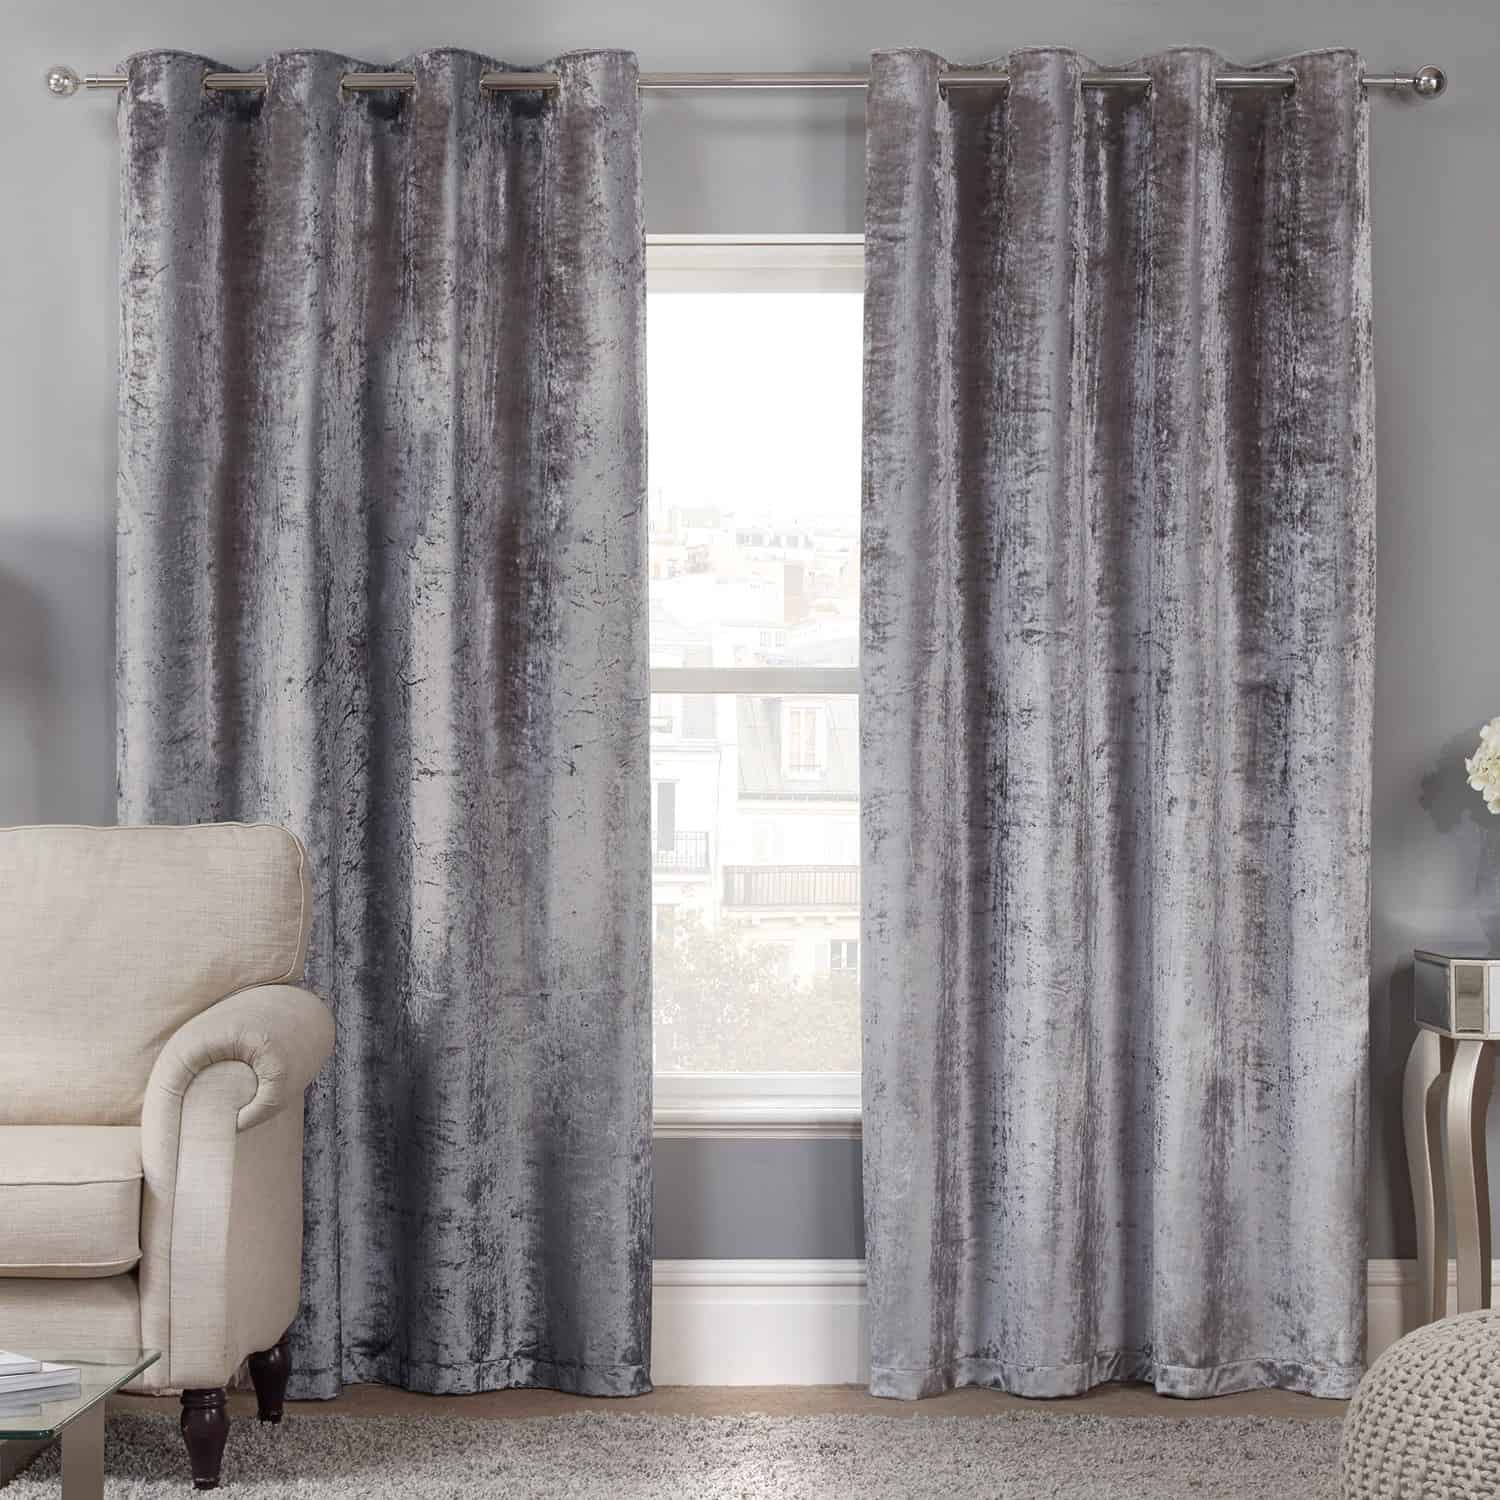 How to Incorporate the Latest Trend Velvet Into Your Home